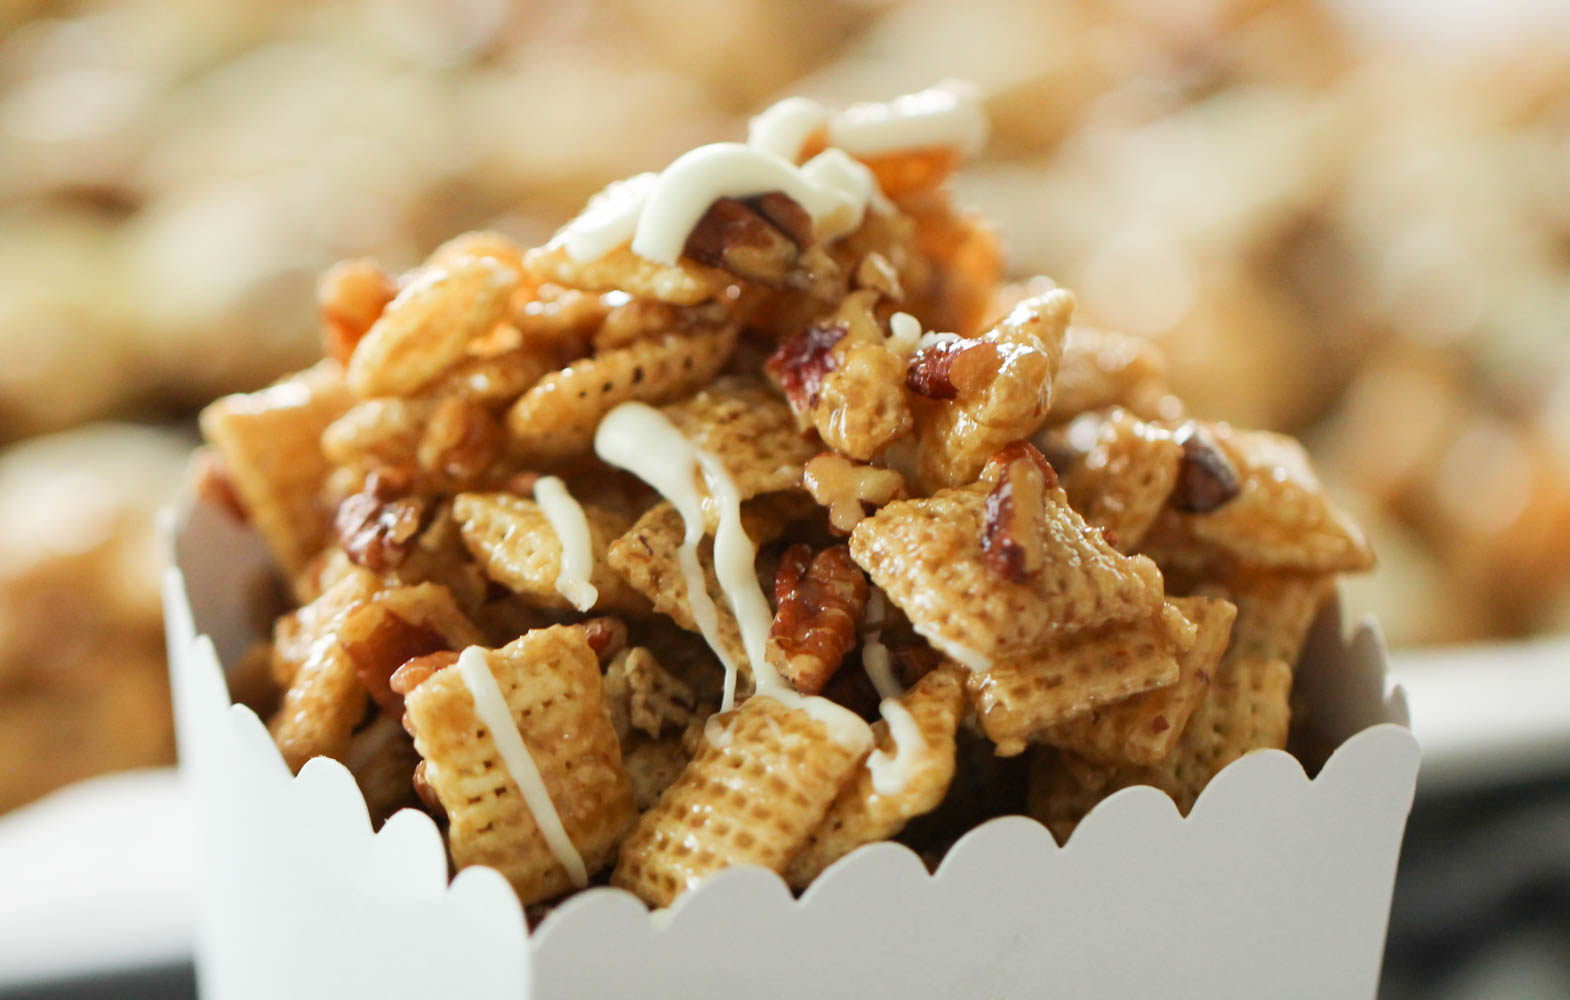 pecan pie chex mix in a white cardboard container